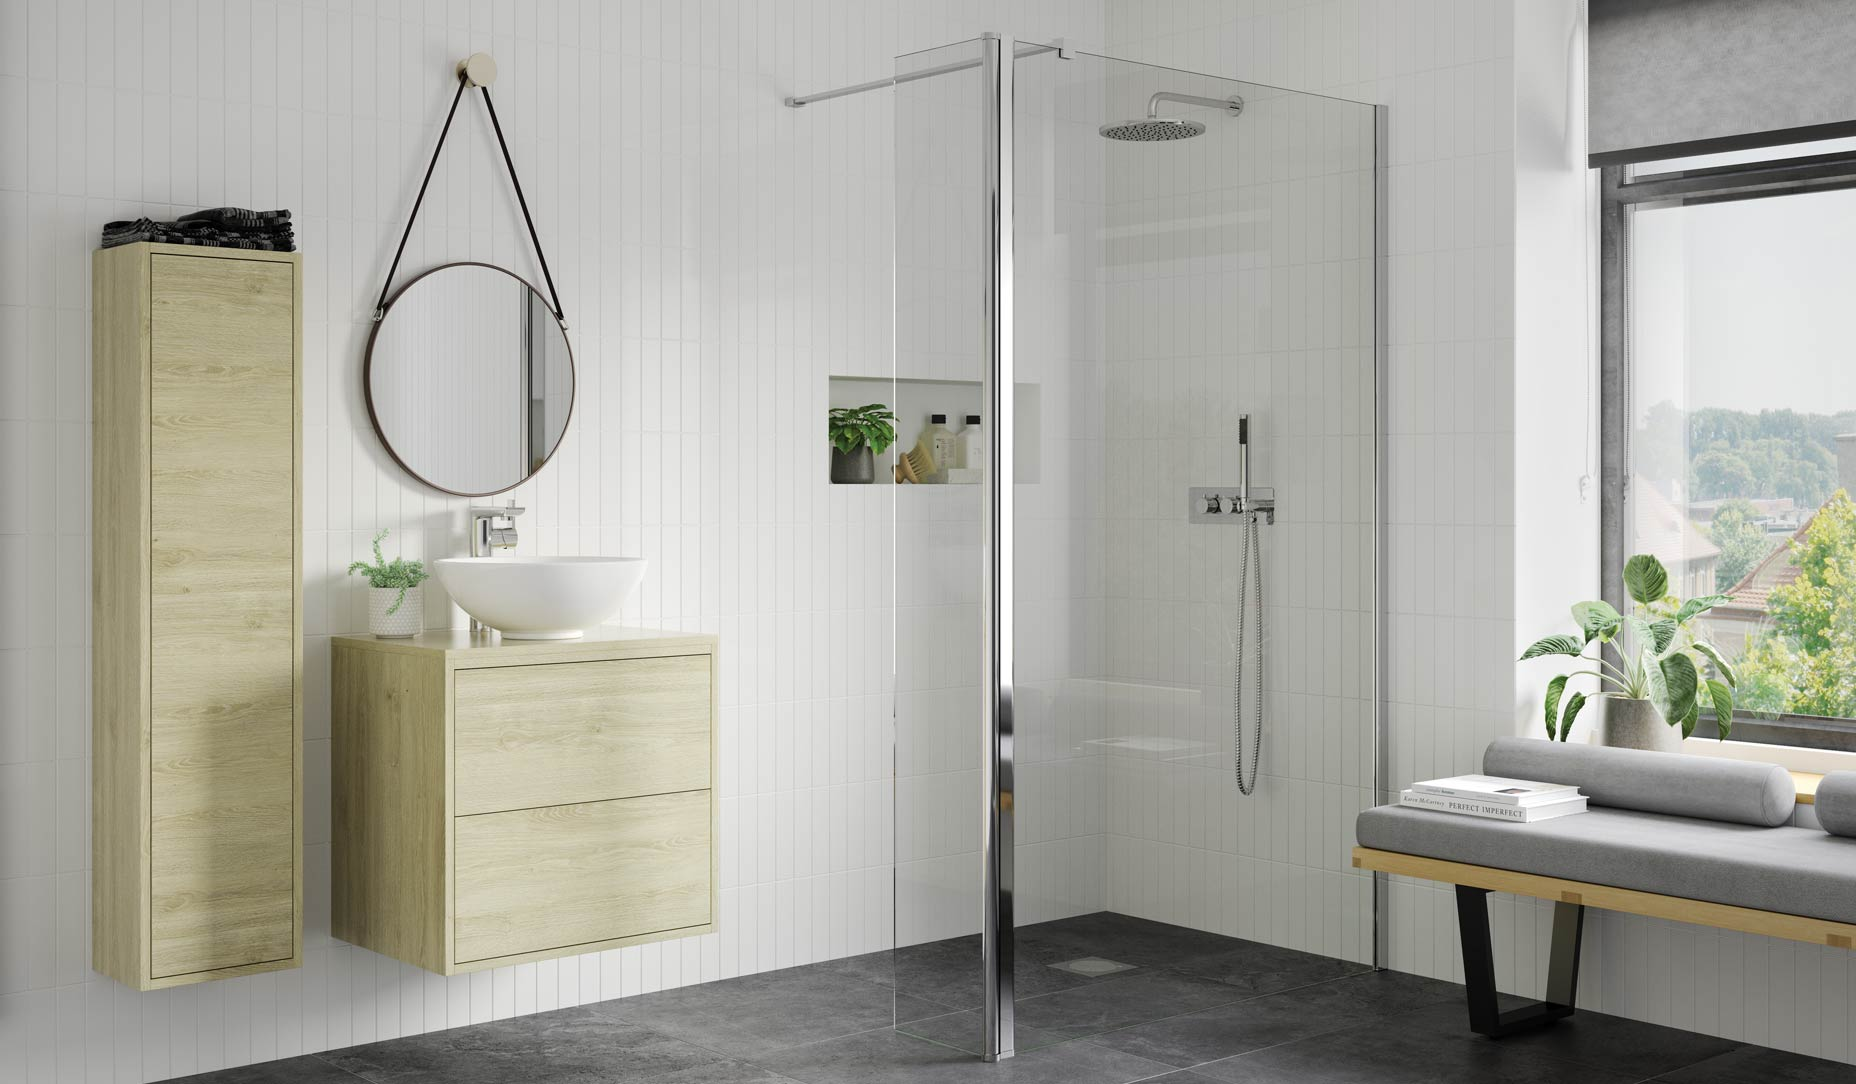 RefleXion 8 Wetroom panel with 300mm rotatable return shown